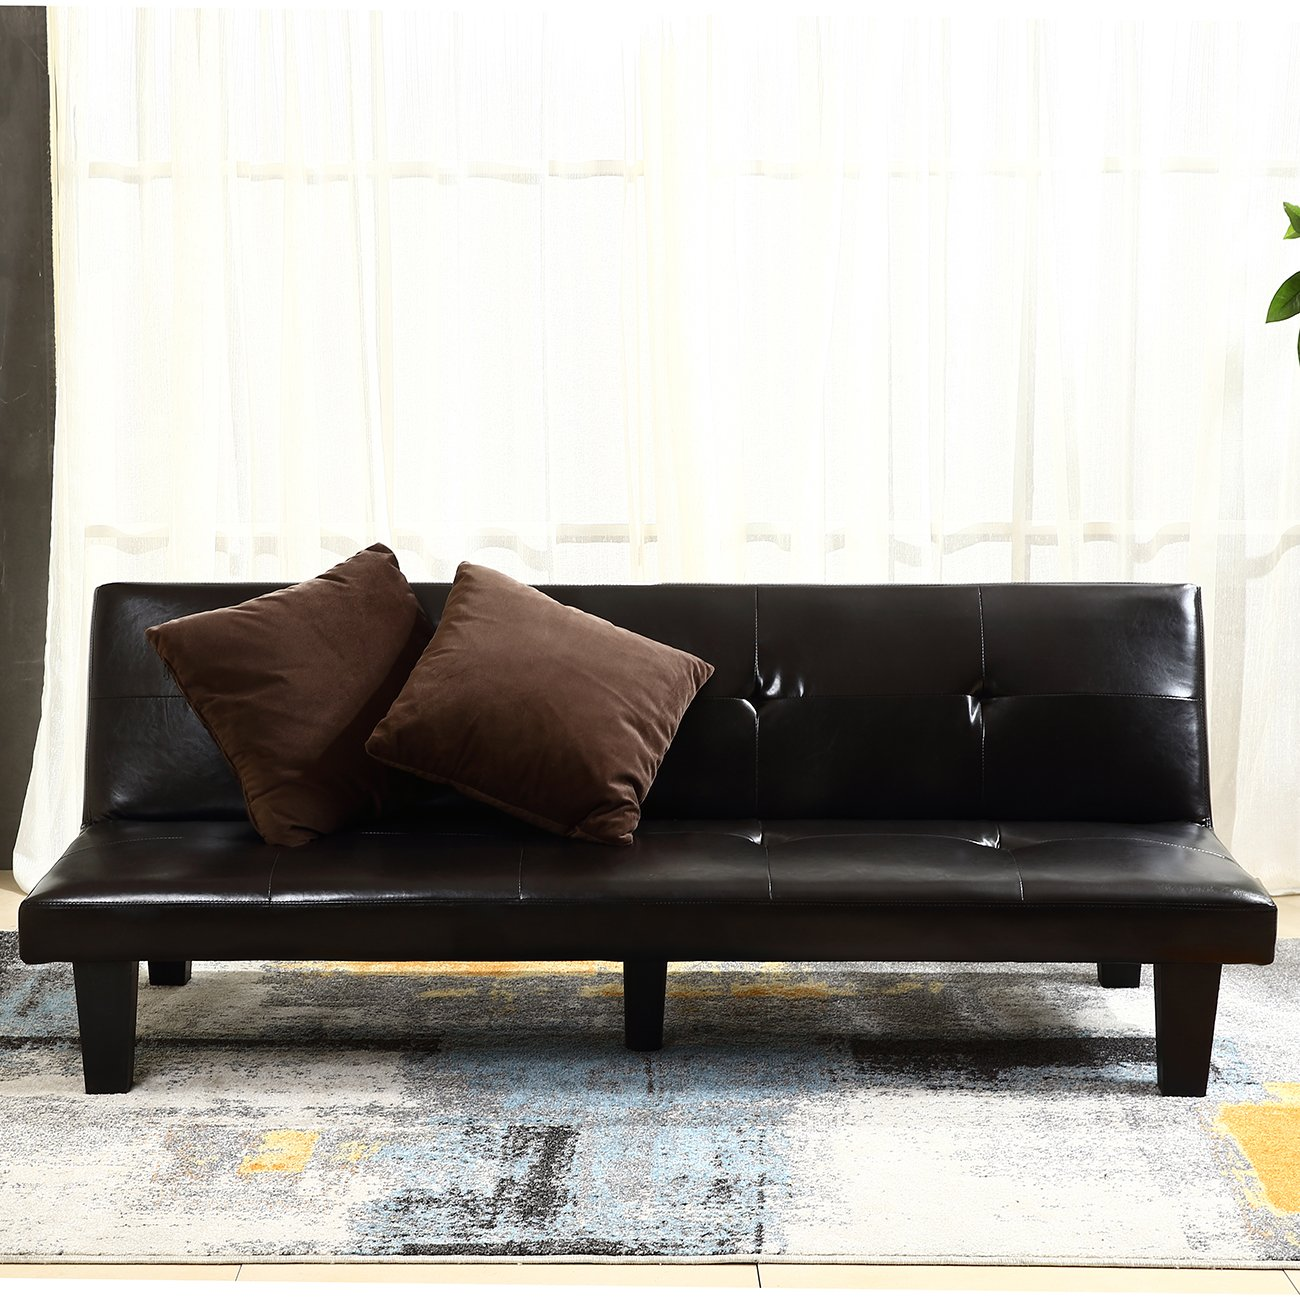 Amazon: Belleze Convertible Sofa Faux Leather Futon Bed Sleeper Couch  W/ (2) Toss Pillow, Brown: Kitchen & Dining